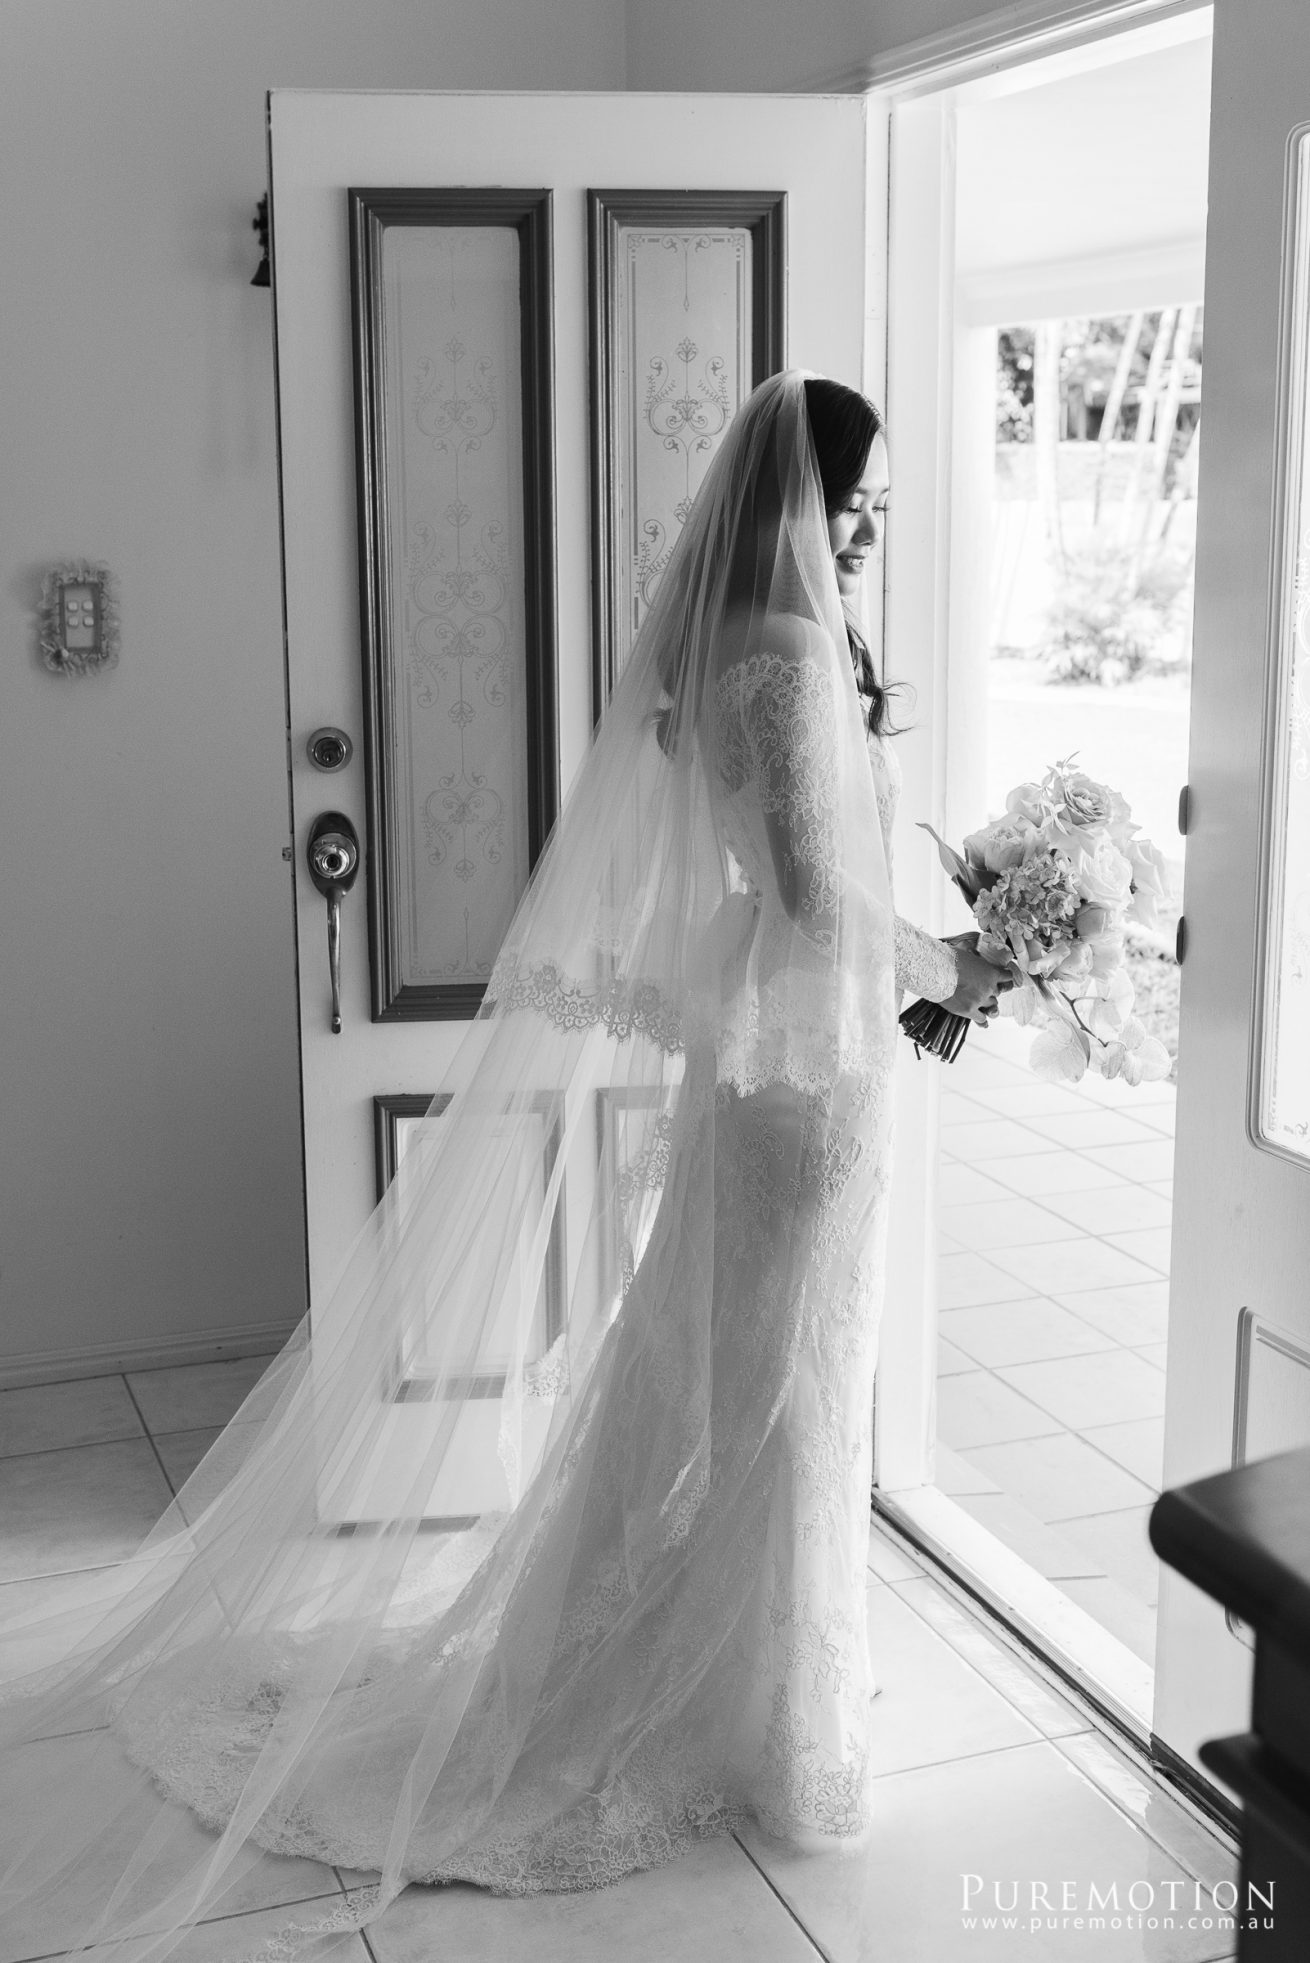 190413 Puremotion Wedding Photography Brisbane Tabernacle Baptist Church Blackbird Alex Huang PeggyAaron_post-0031